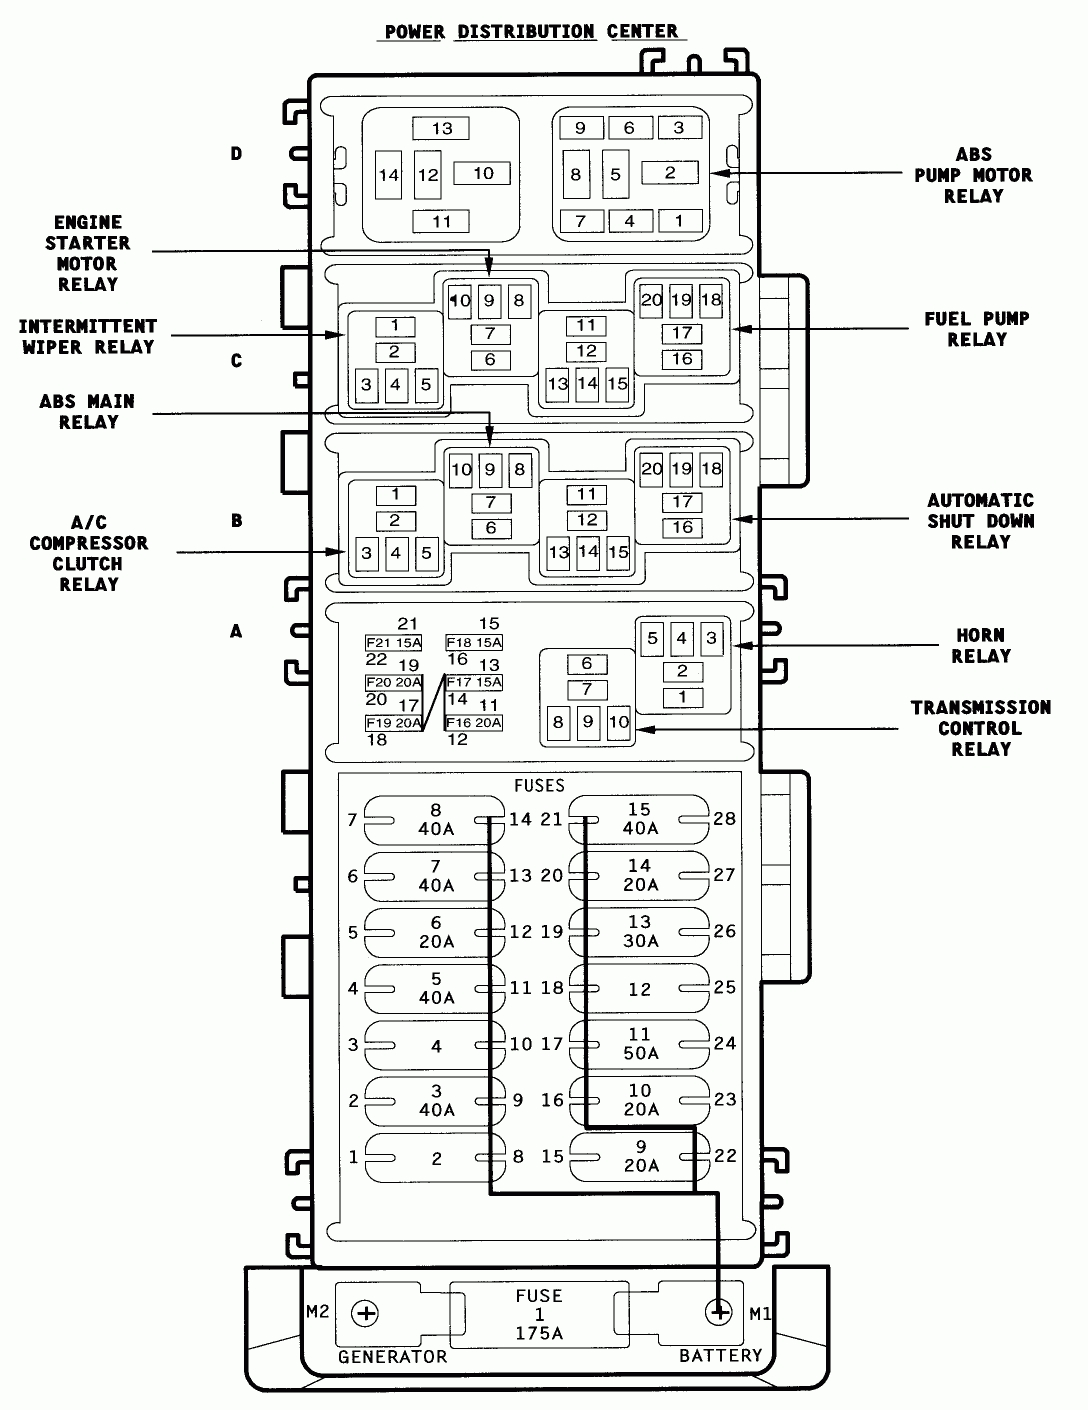 99 Jeep Cherokee Fuse Diagram - G 722 Block Diagram for Wiring Diagram  Schematics | 99 Grand Cherokee Fuse Diagram |  | Wiring Diagram Schematics